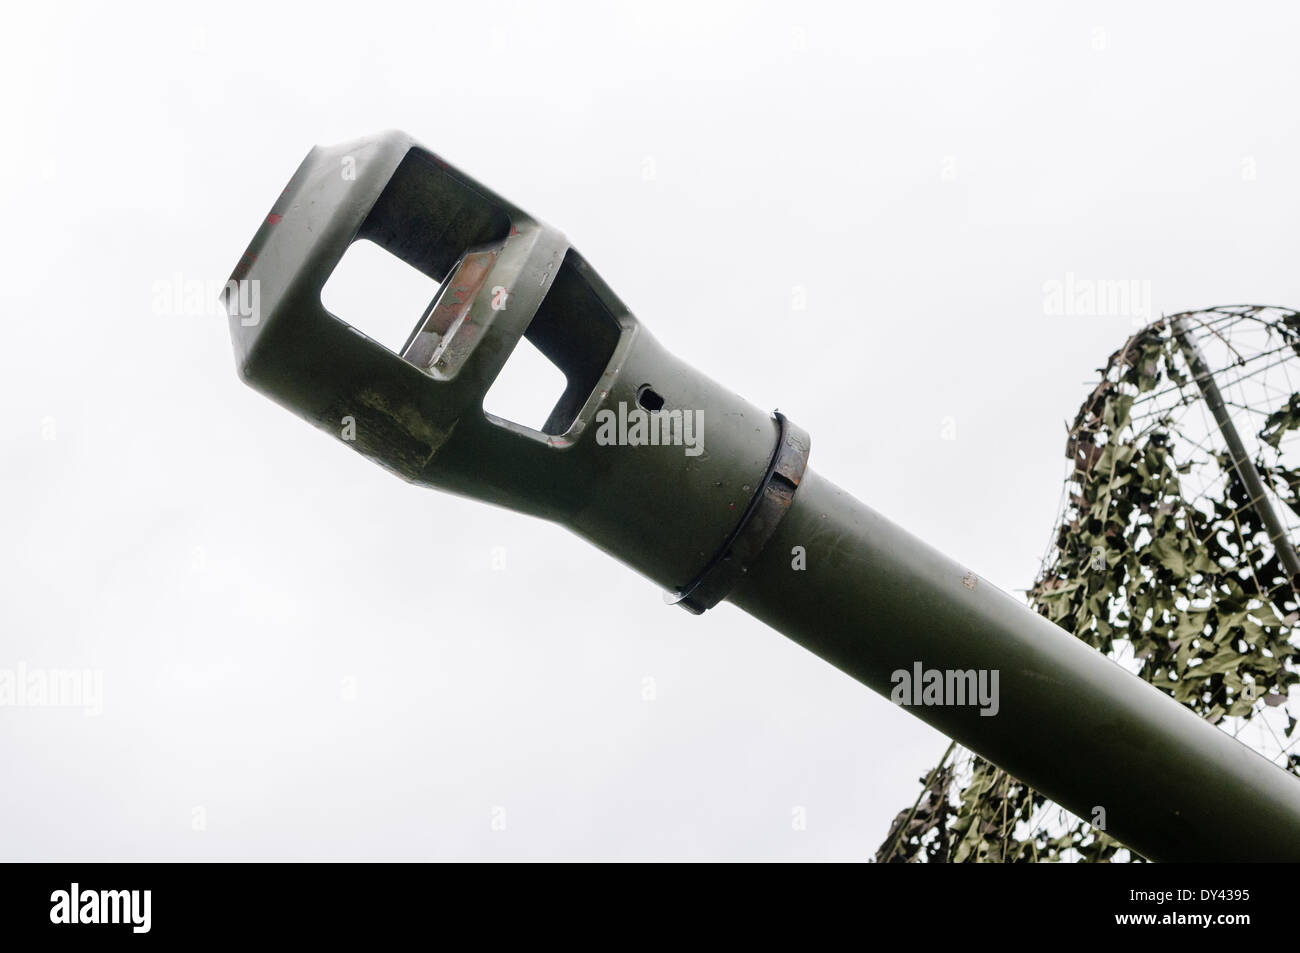 Muzzle of a 105mm Light Artillery Gun pokes through camouflage netting in a field - Stock Image